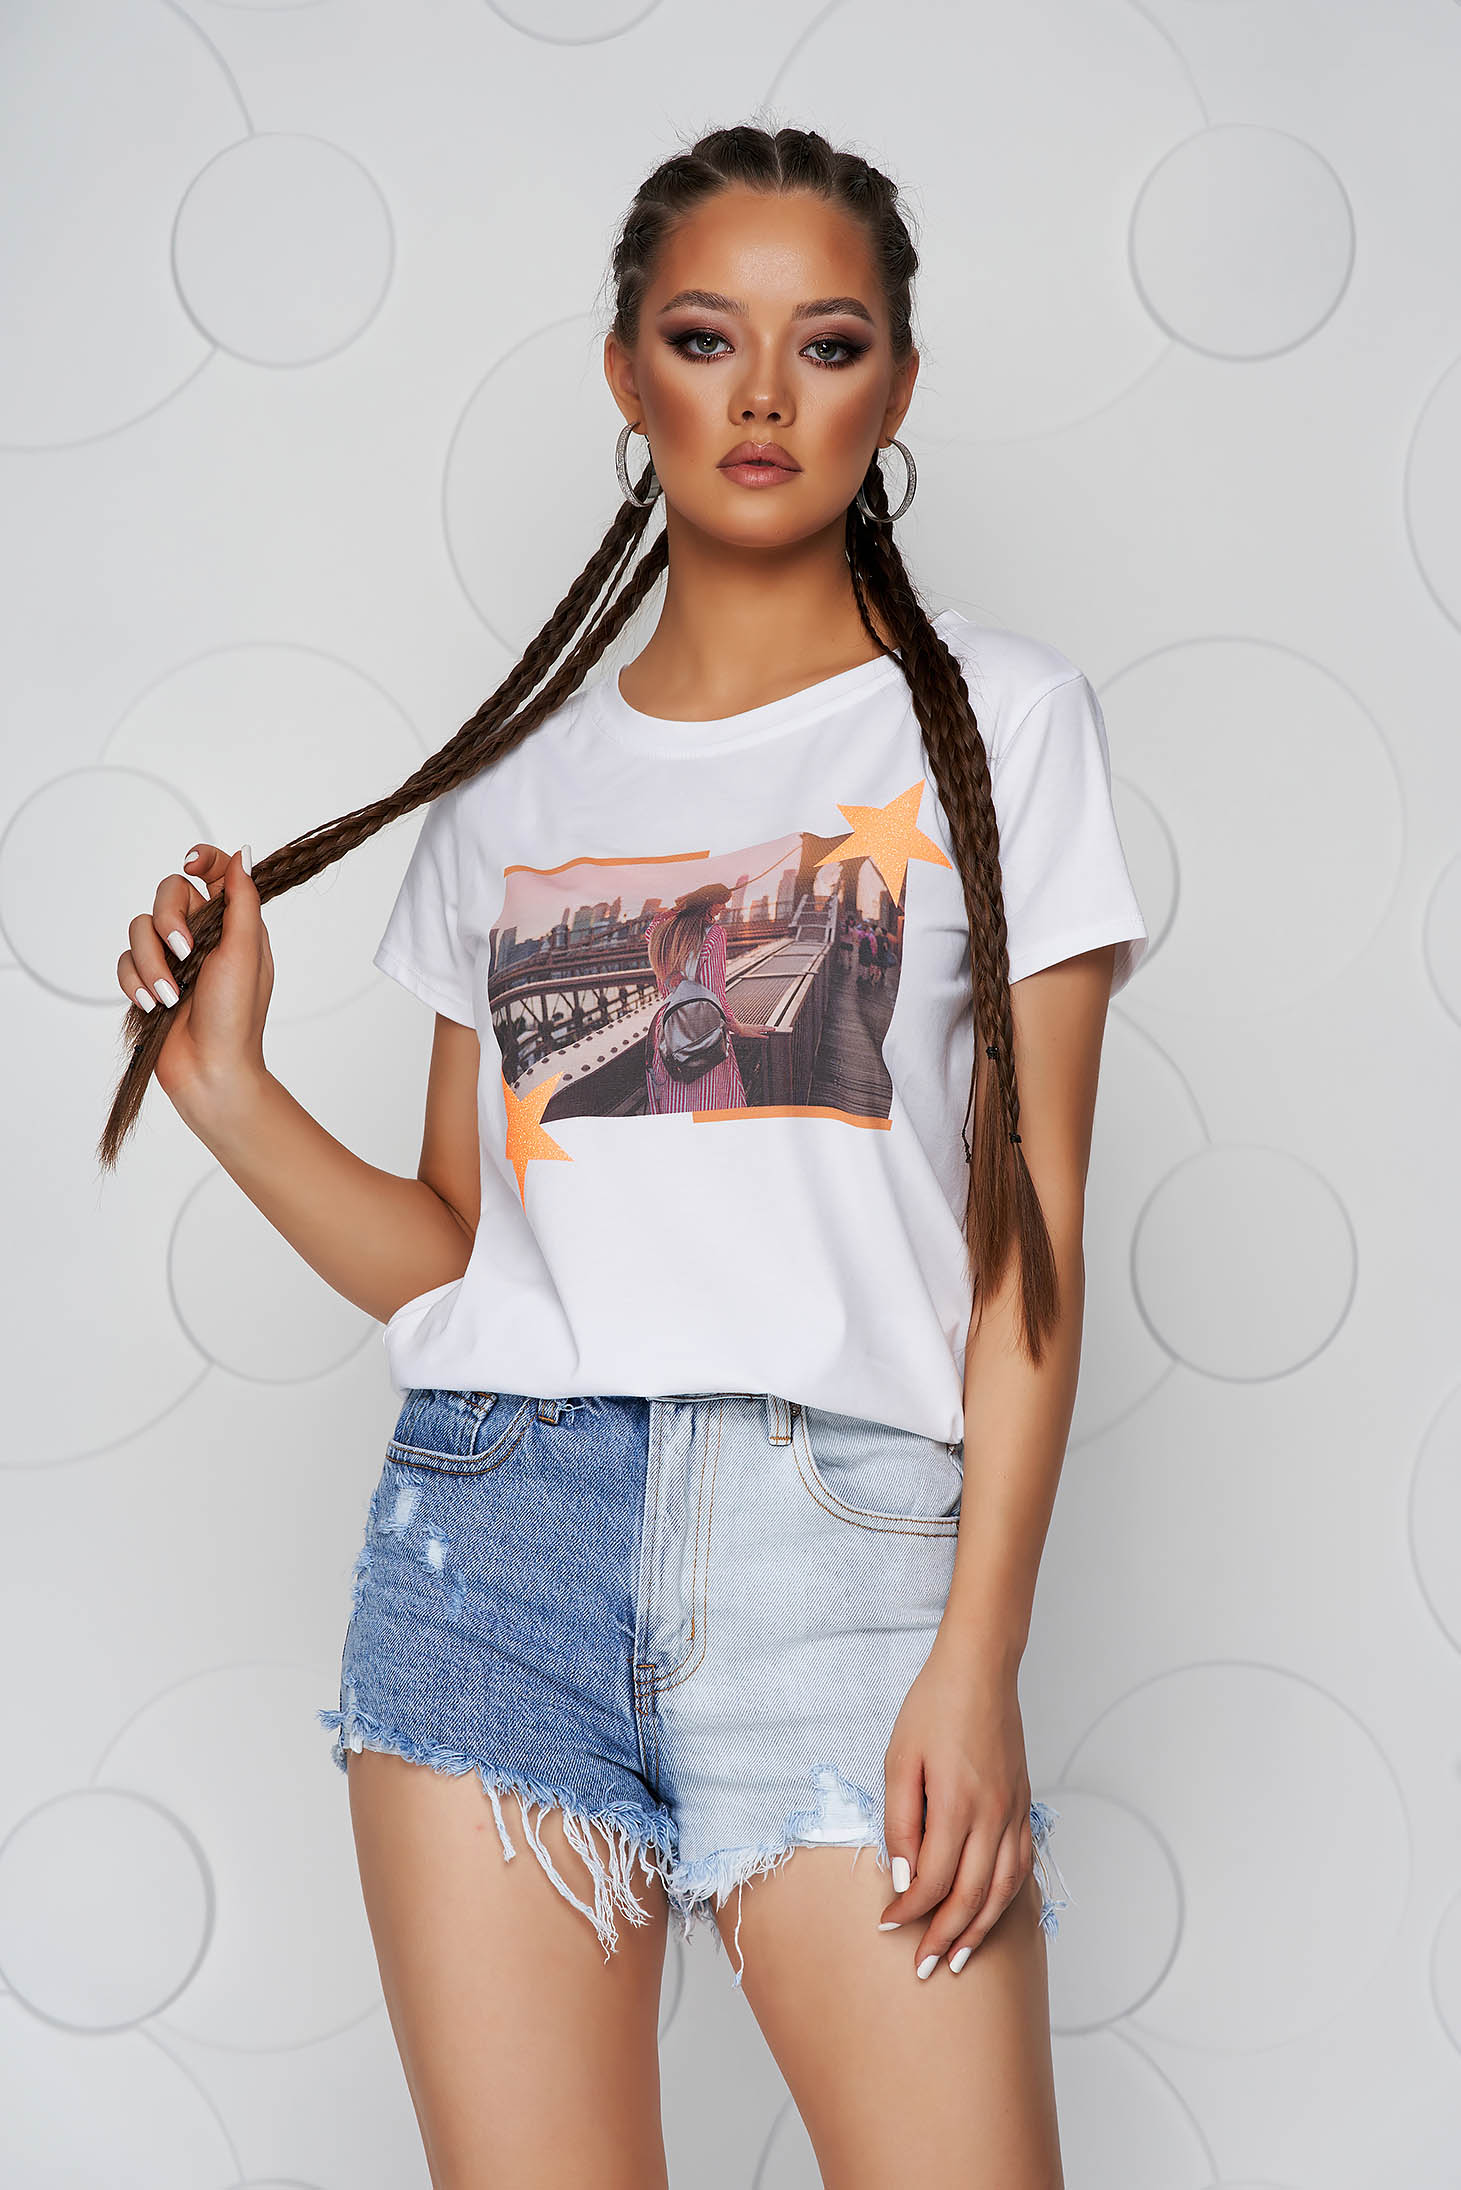 Orange t-shirt cotton loose fit with rounded cleavage with glitter details